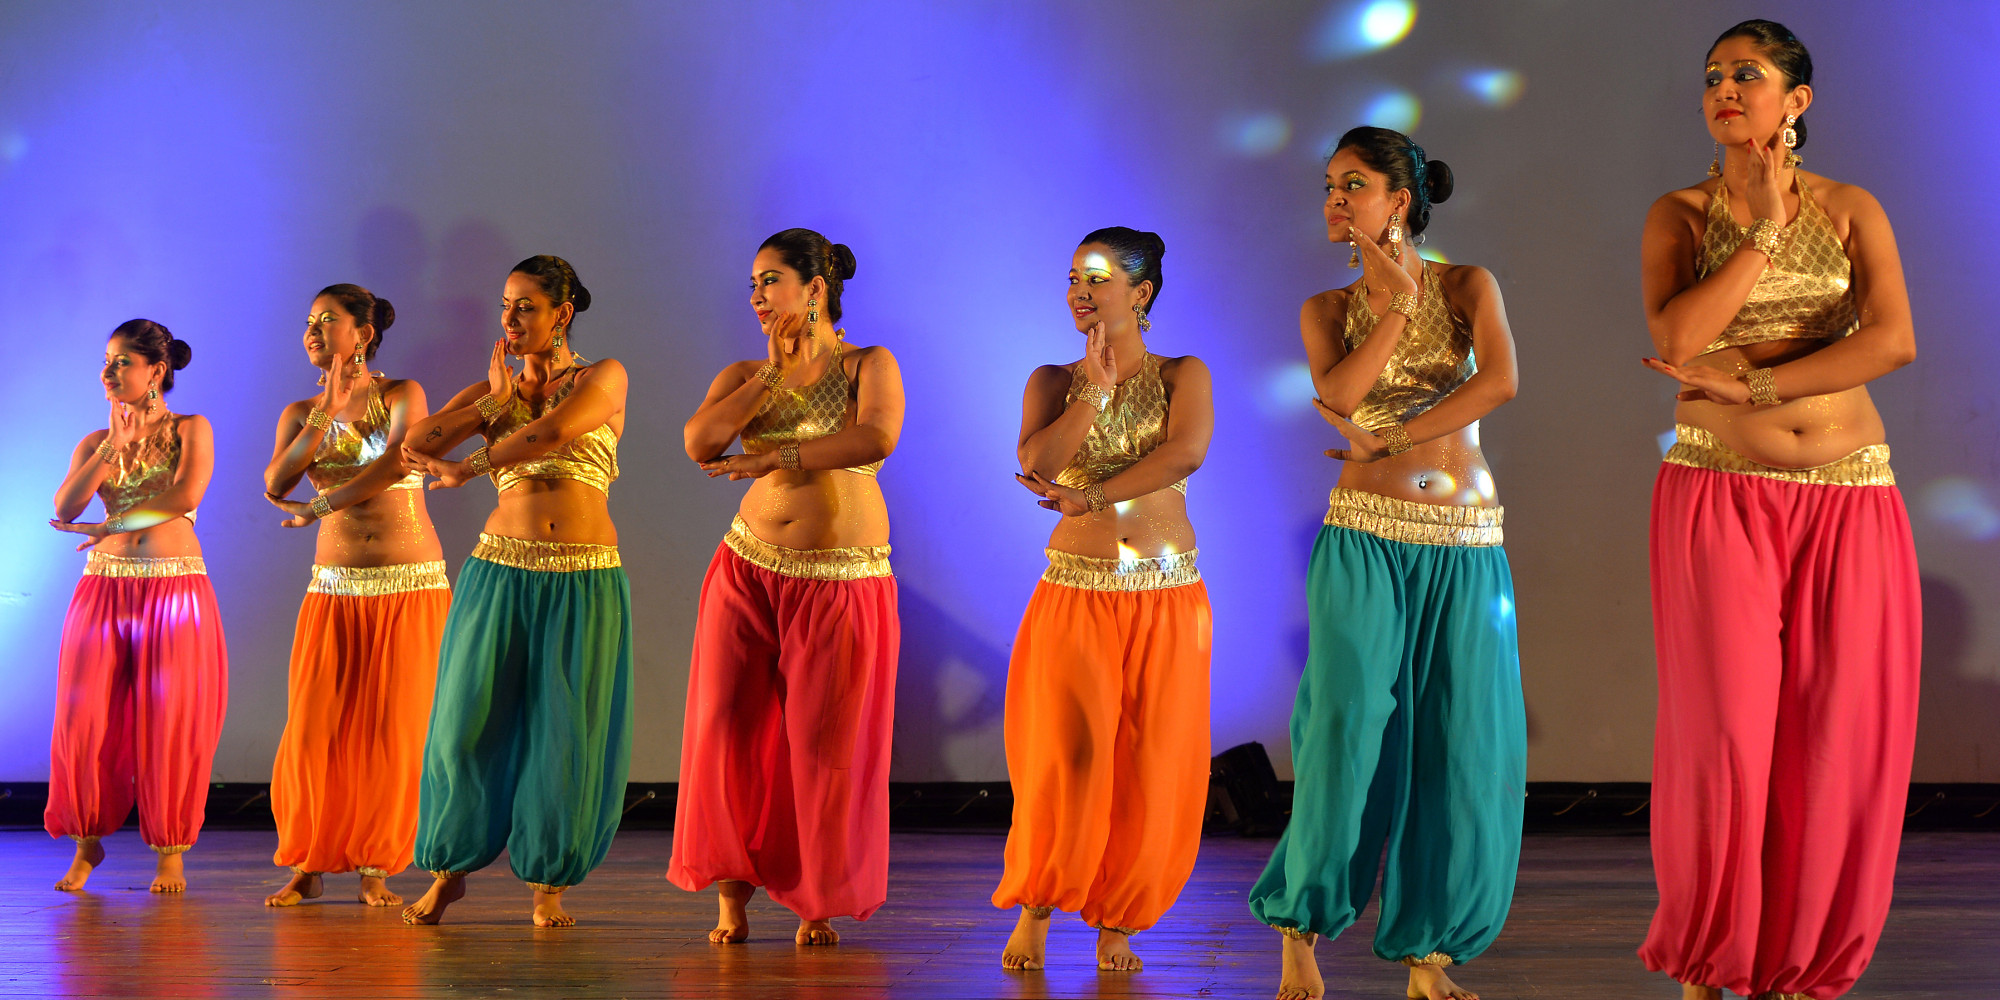 9 reasons every woman should take up belly dancing | huffpost